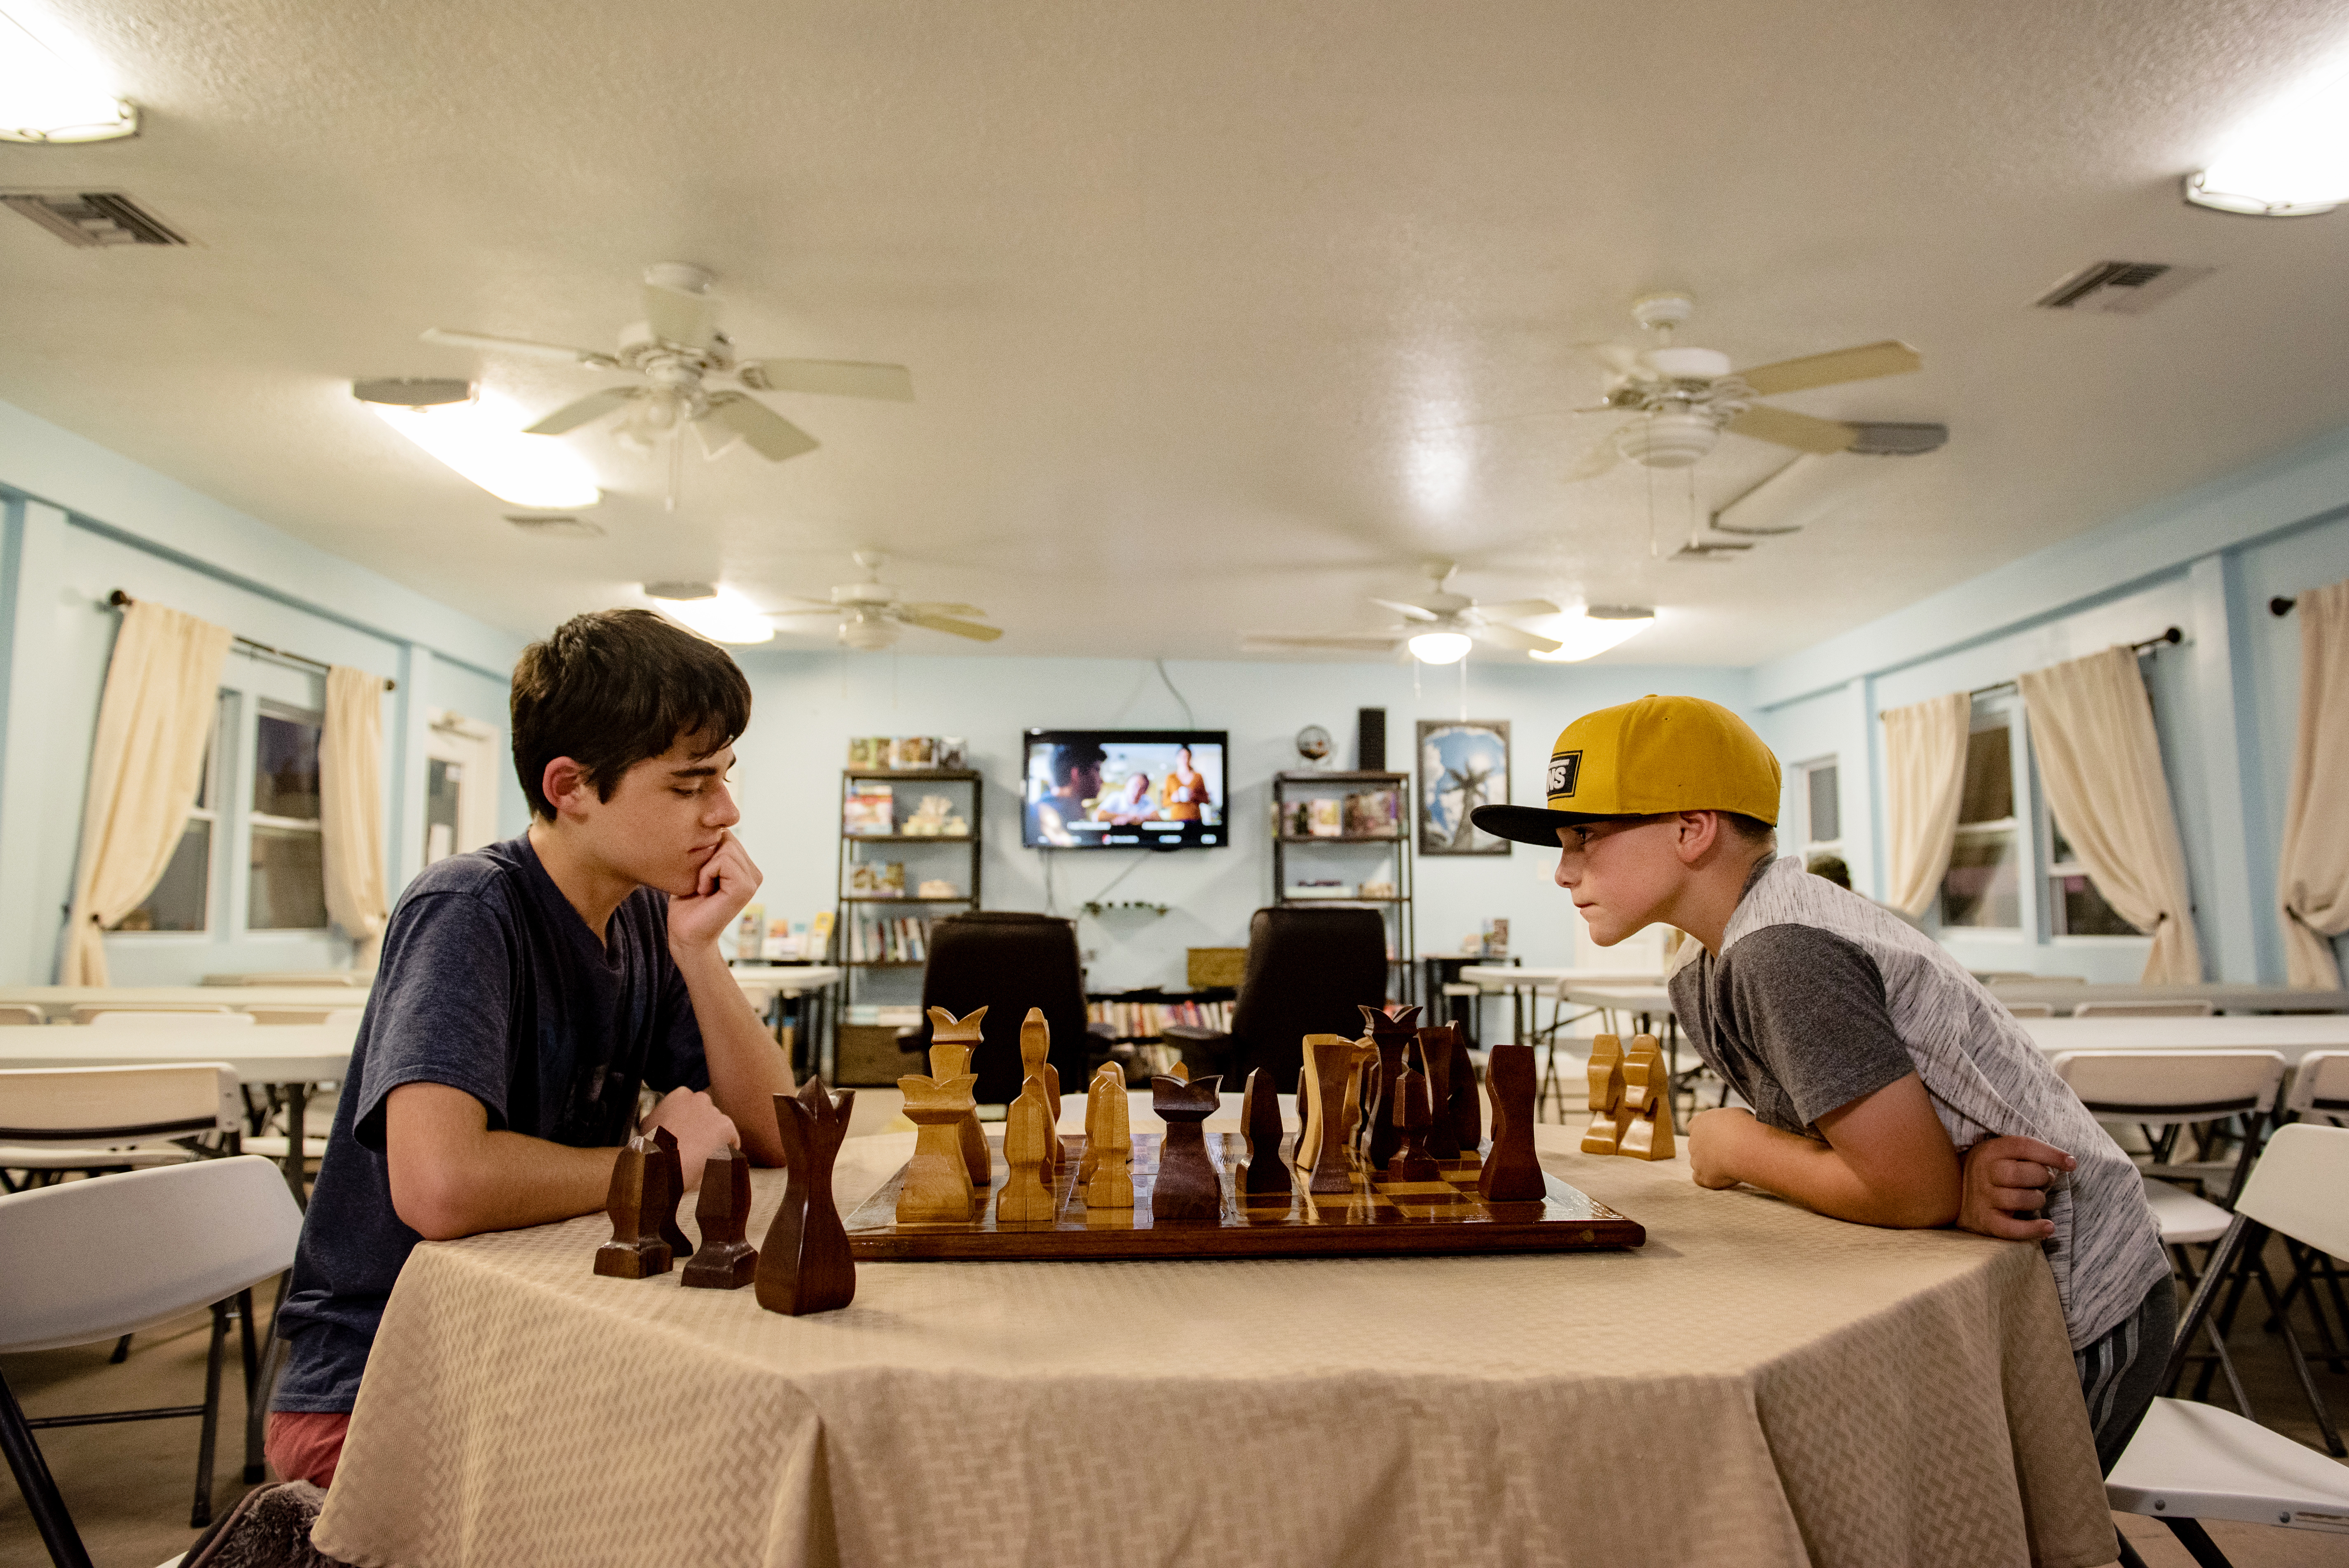 Some of the guests playing chess in the recreational hall.